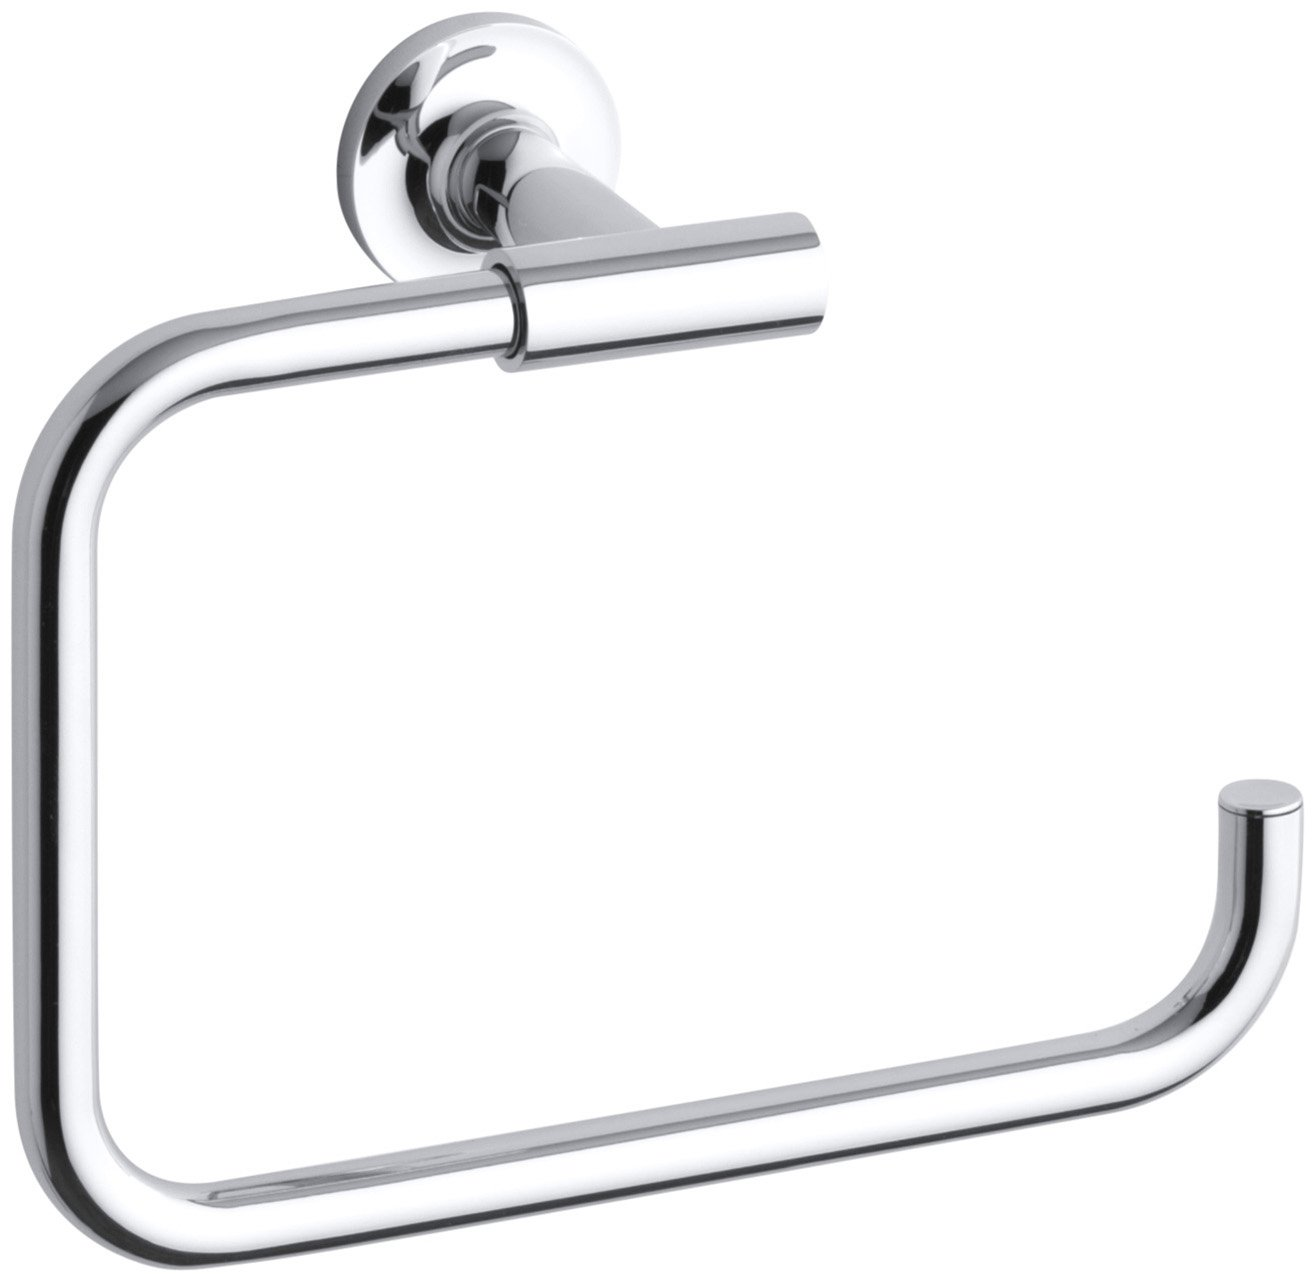 KOHLER K-14441-CP Purist Towel Ring, Polished Chrome